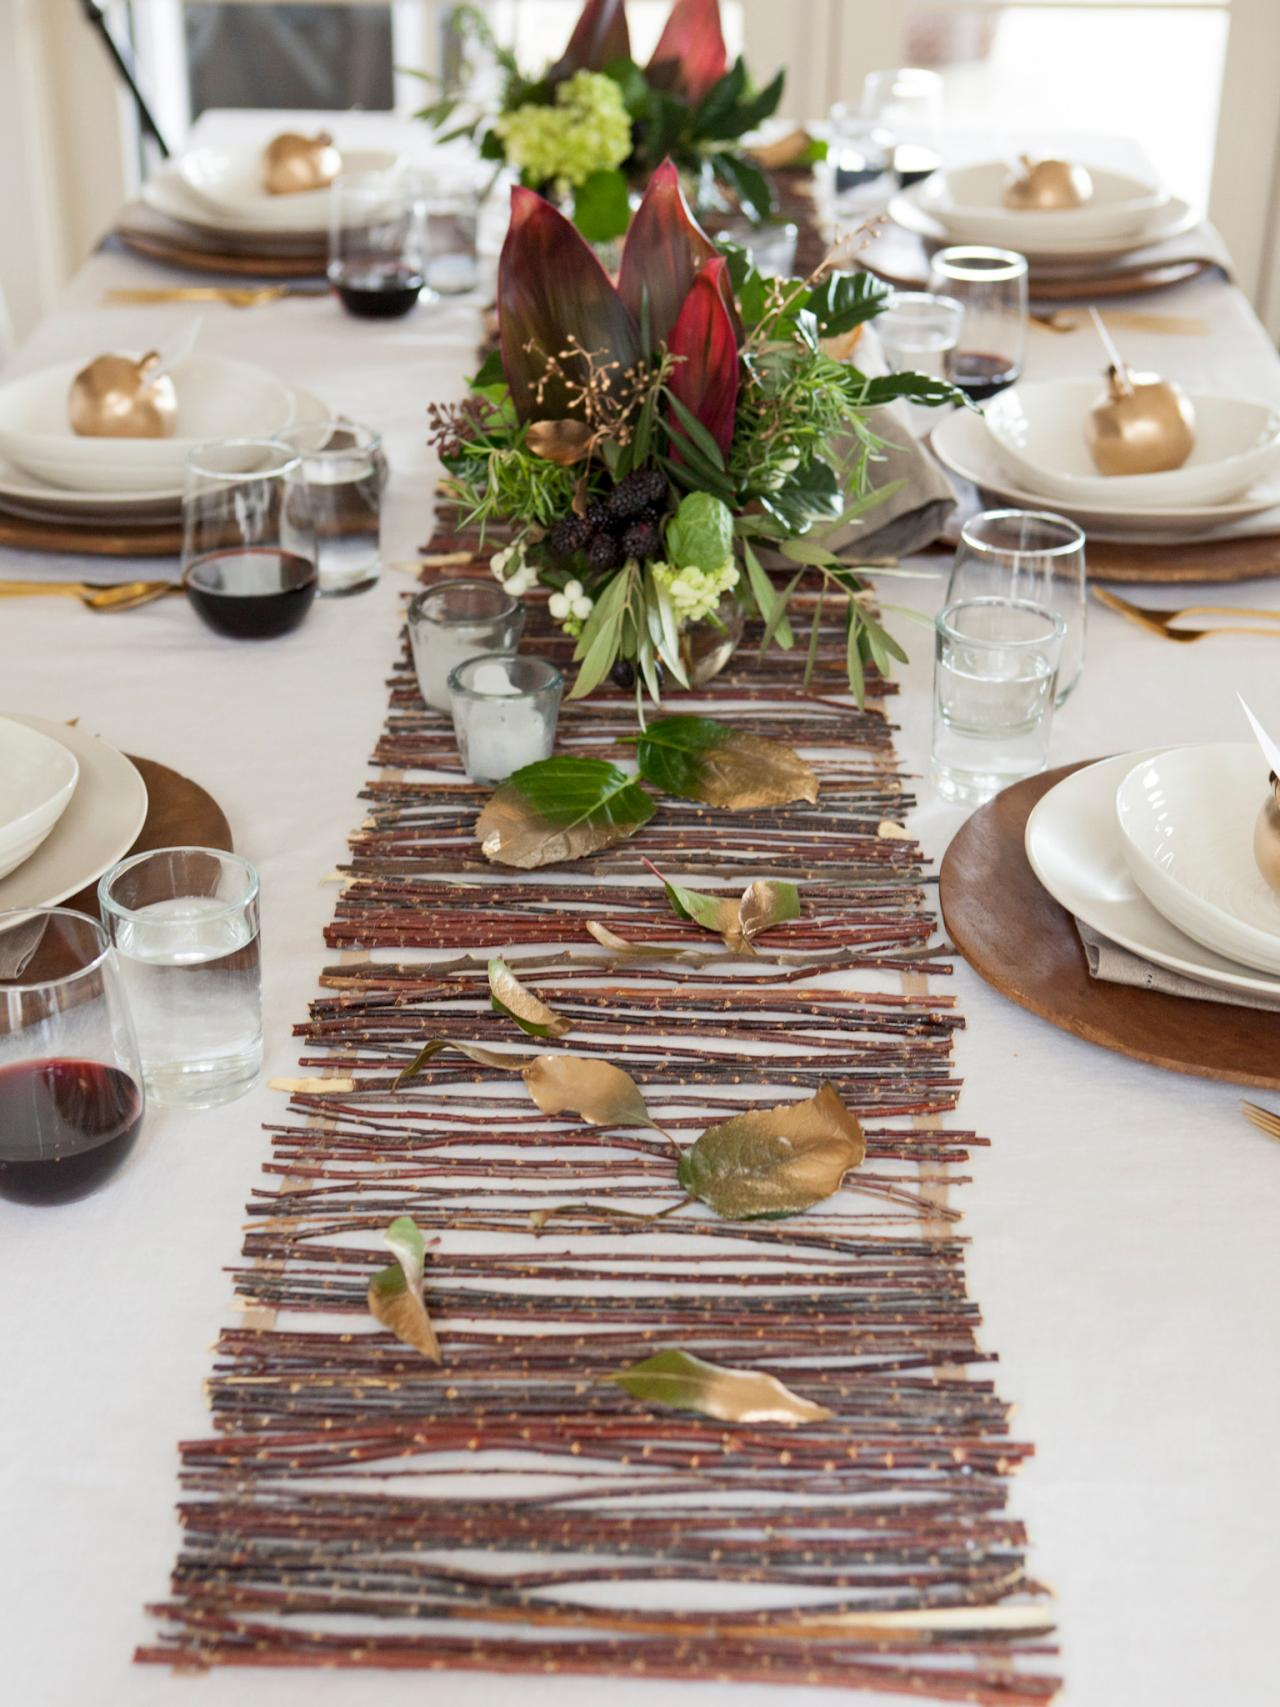 table runner The Finest Table Runners for your Dining Table Earthy twig table runner